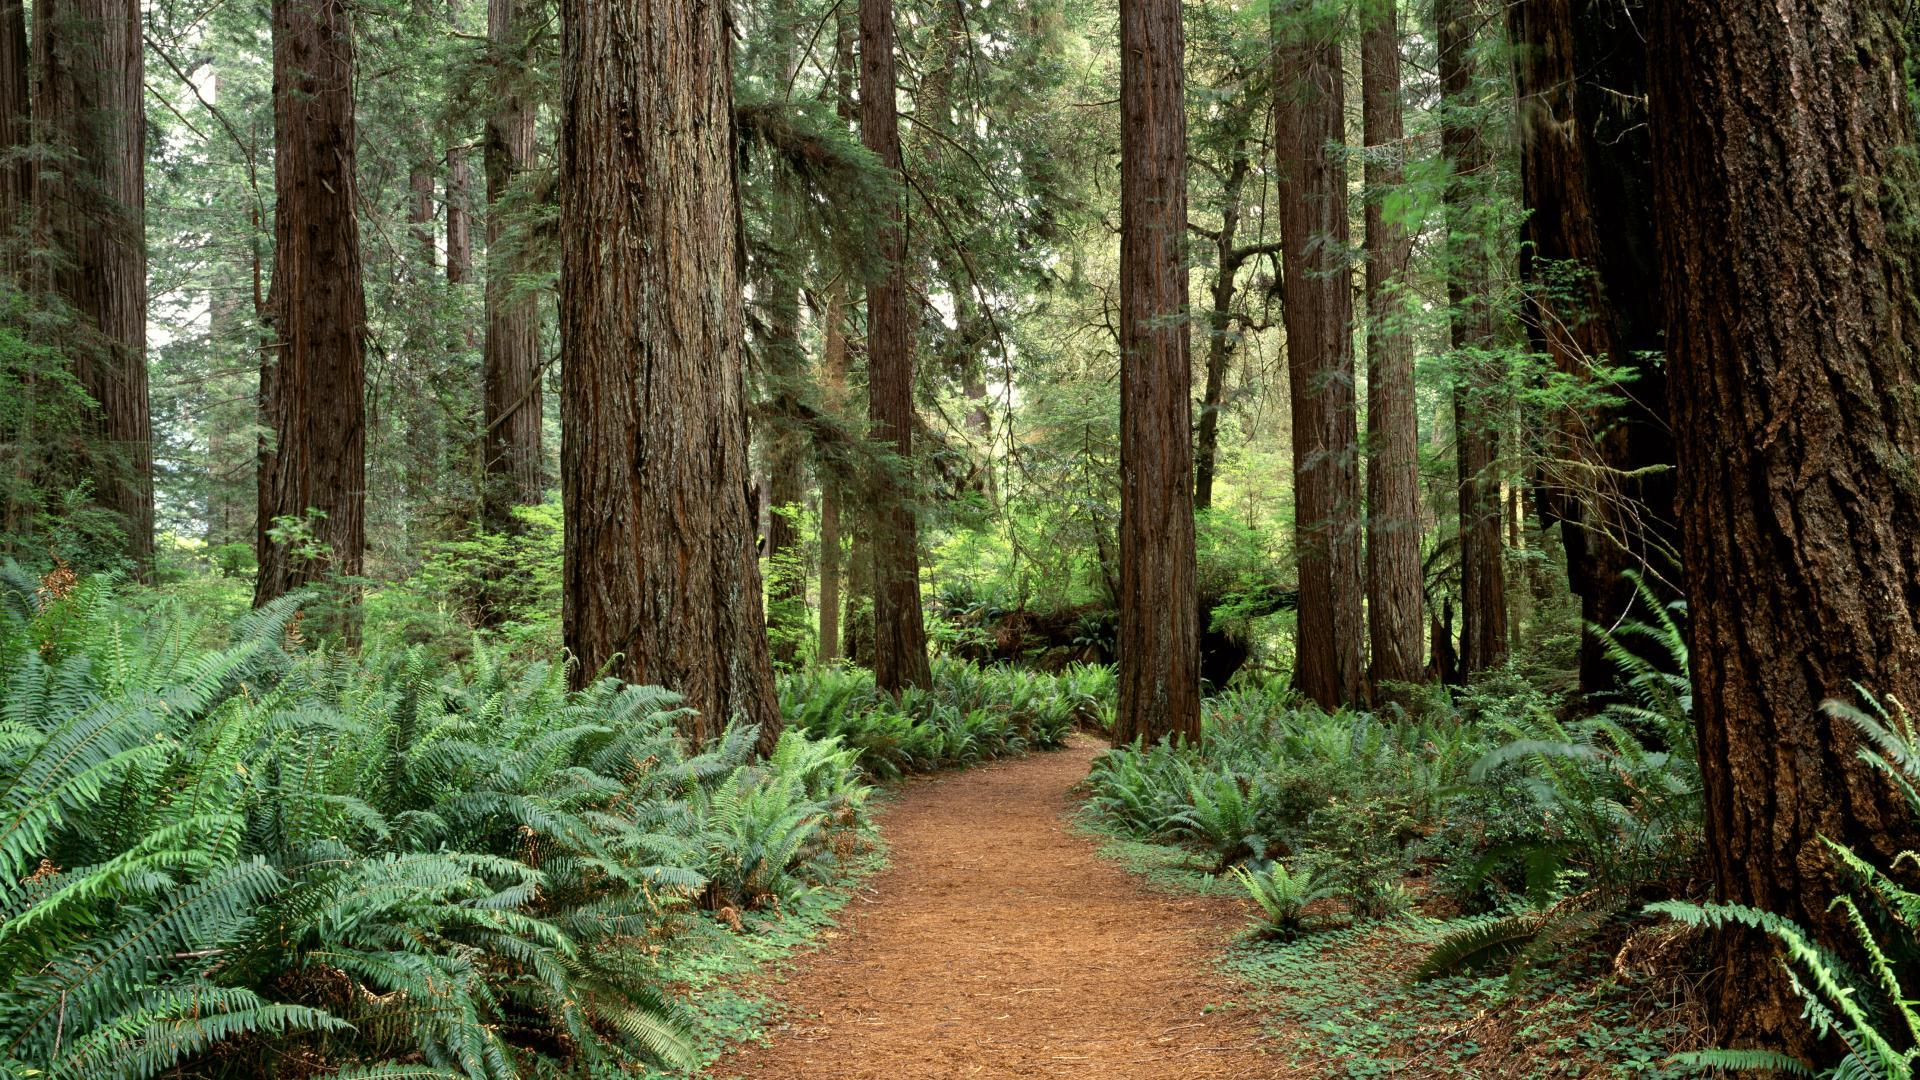 Prairie Creek Redwoods State Park, near Crescent City, Ca. Two